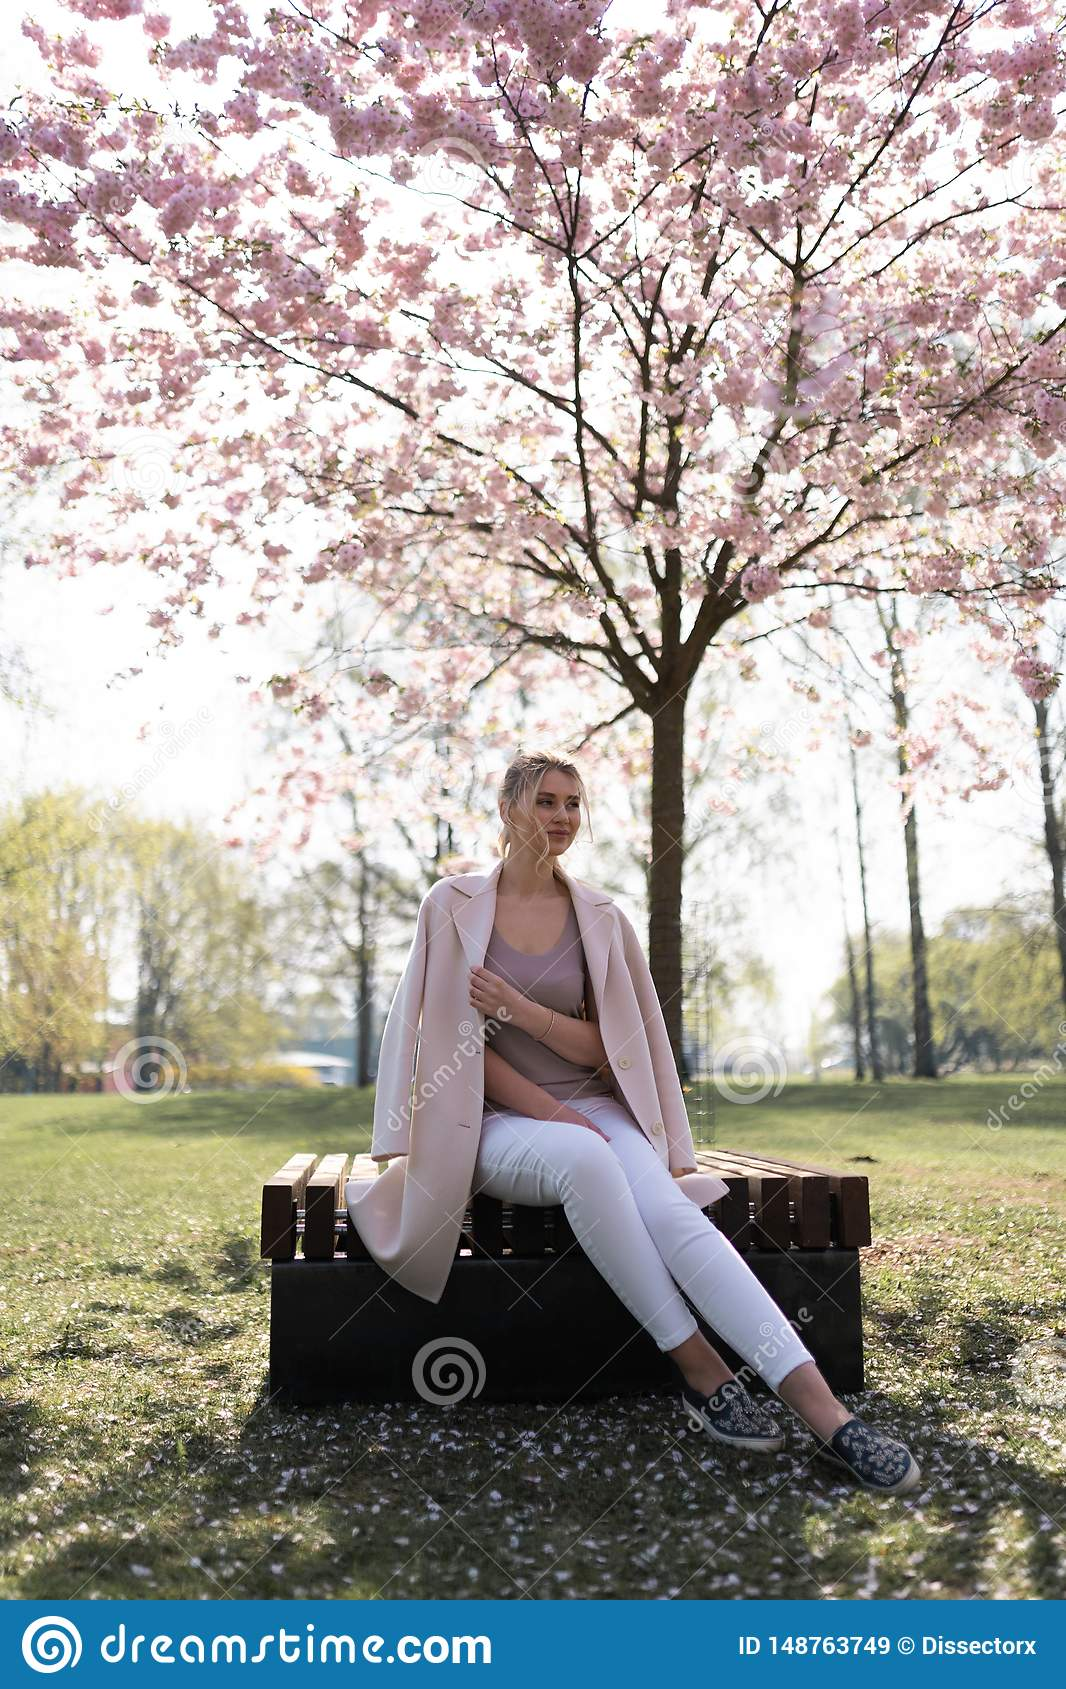 Beautiful blonde young woman in Sakura Cherry Blossom park in Spring enjoying nature and free time during her traveling